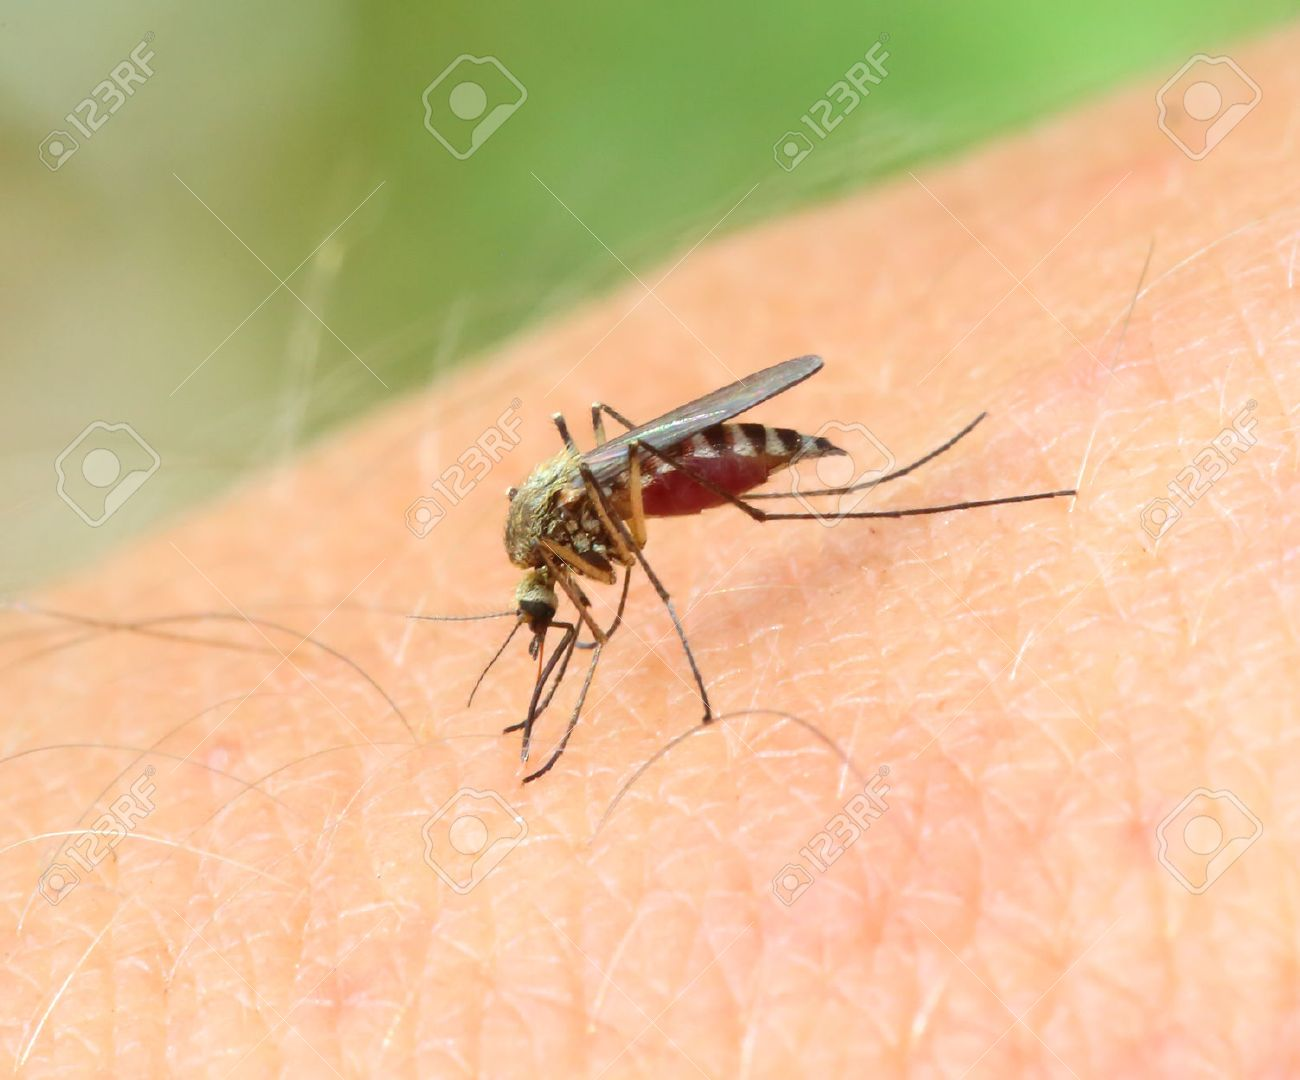 mosquito drinks blood out of man - macro shot - 28607273